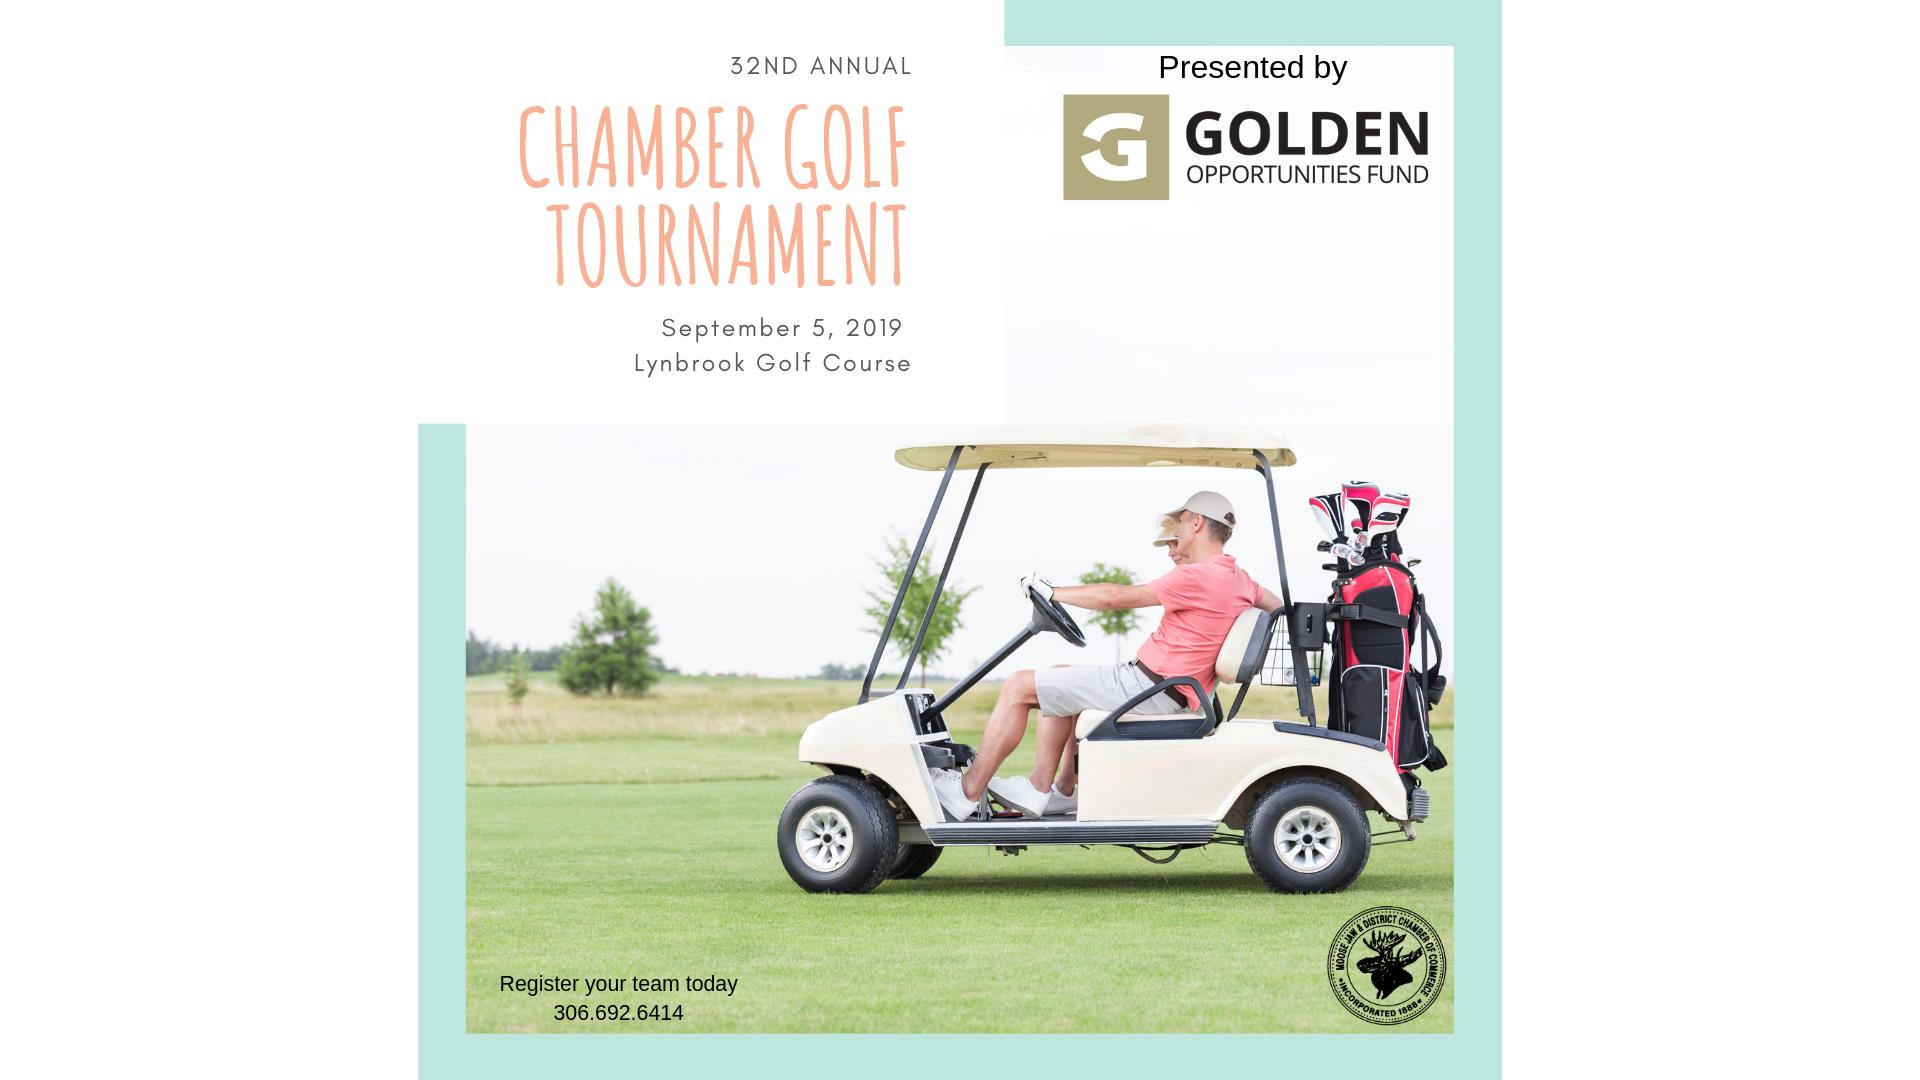 Golden Opportunities Fund presents the 32nd Annual Moose Jaw & District Chamber of Commerce Golf tournament September 5th at the Lynbrook Golf Course. Shot gun start @ 12:30pm.  Back by popular demand Casino Moose Jaw's Fastest Hole in Golf!  Teams of Four - $525 (includes GST, green fee's, golf cart, and banquet tickets) Individuals - $140 per person (includes GST, green fee, shared cart and banquet ticket) To Register your team call 306.692.6414